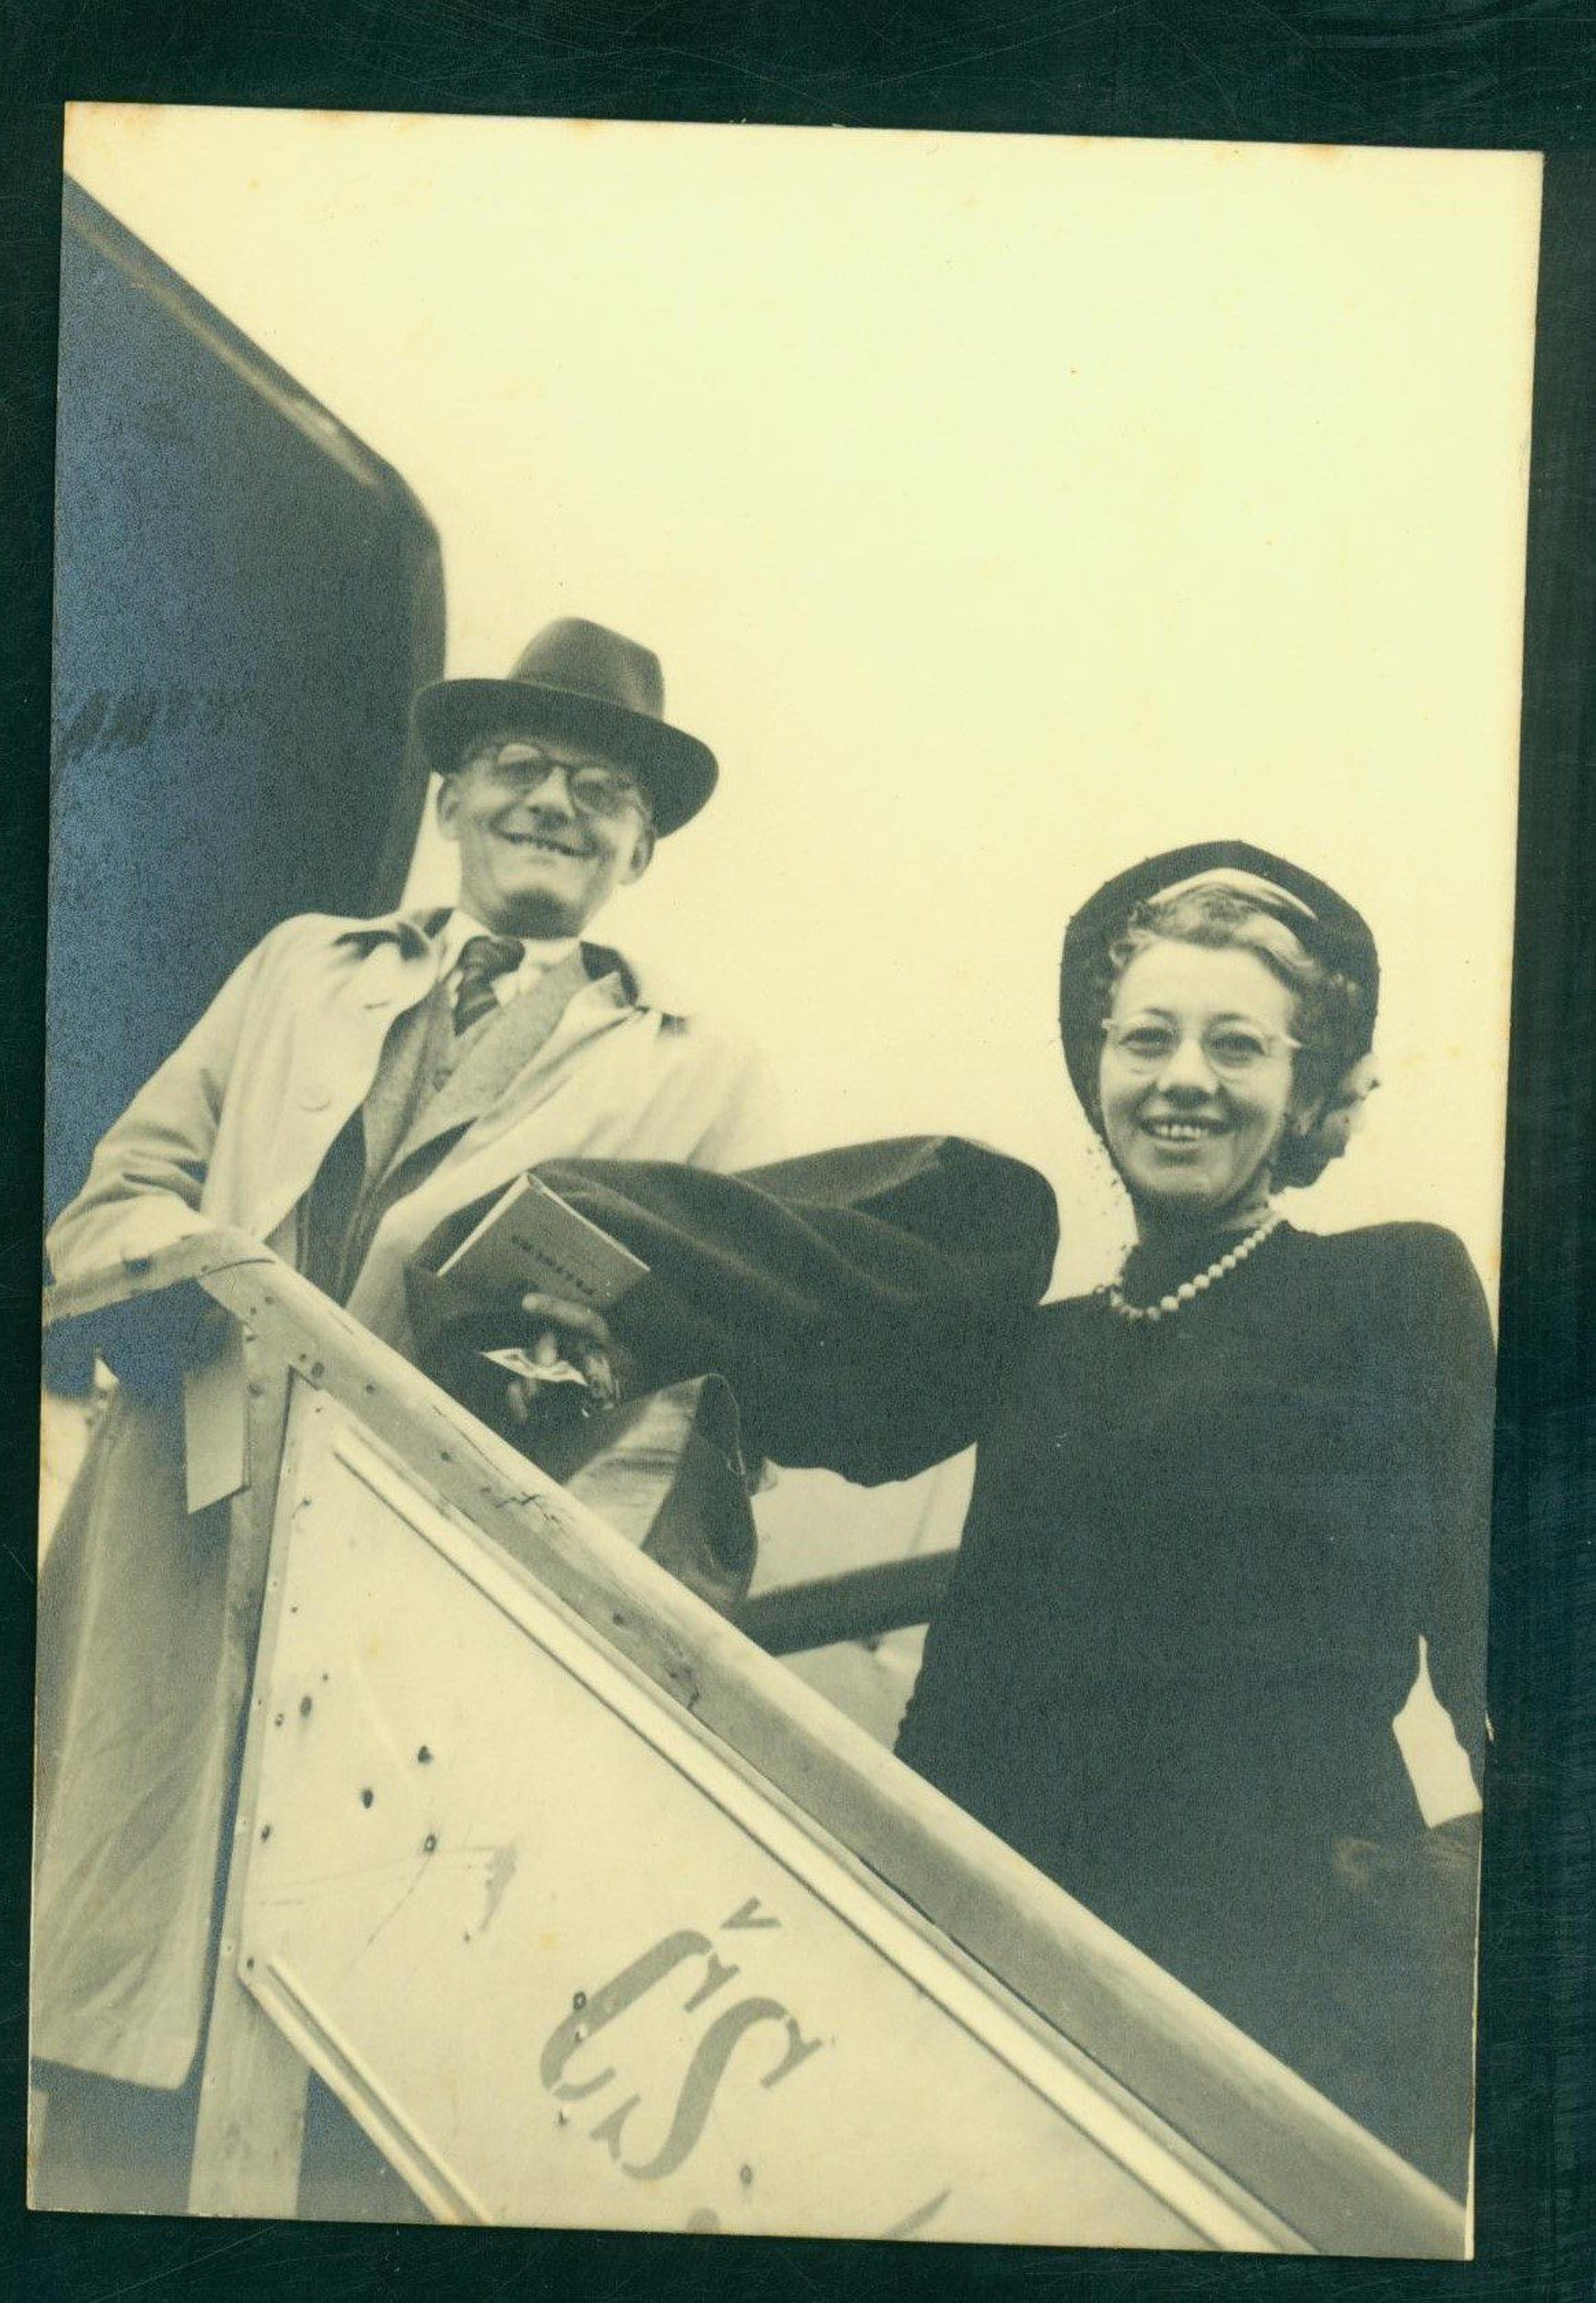 Max Broad and Esther Hoffe.